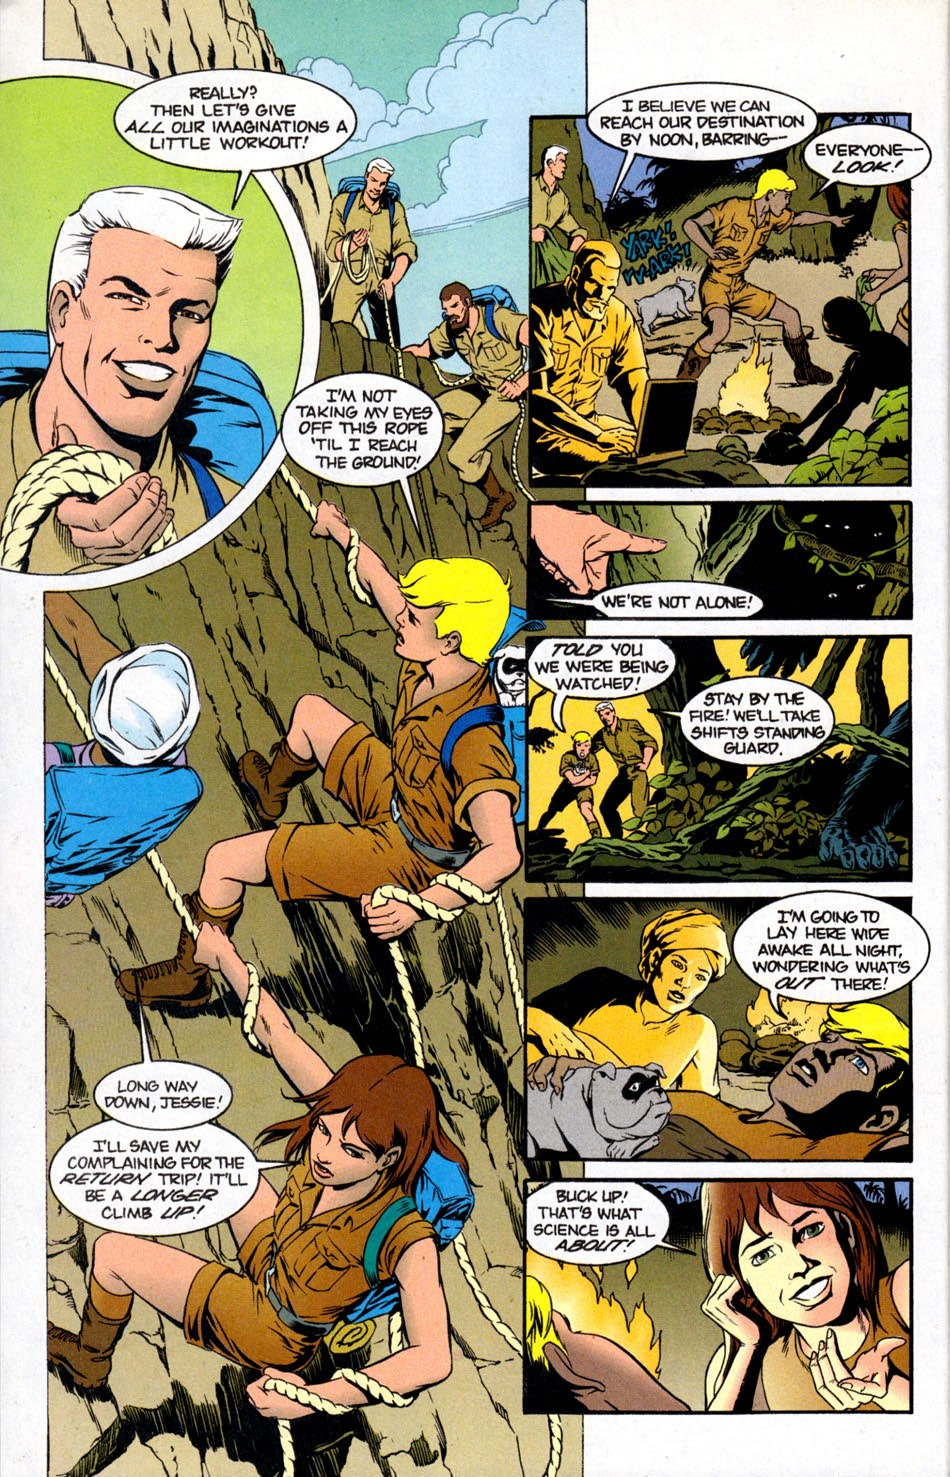 Read online The Real Adventures of Jonny Quest comic -  Issue #5 - 28